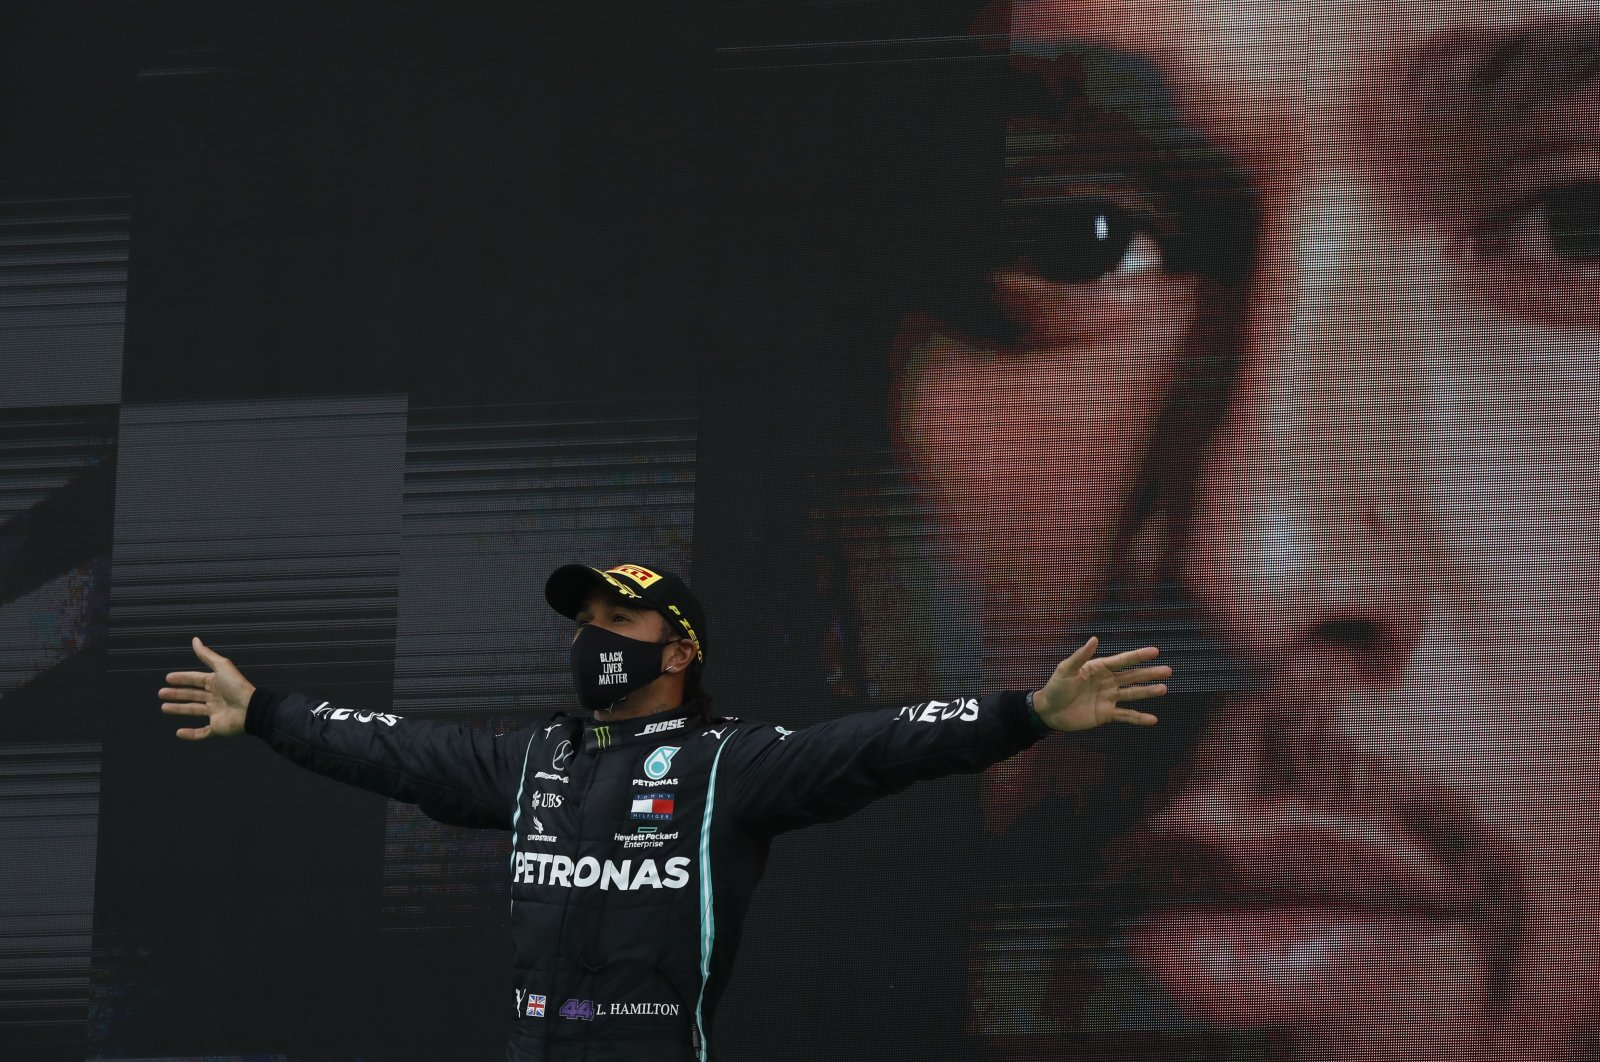 Mercedes driver Lewis Hamilton celebrates after winning the Formula One Portuguese Grand Prix in Portimao, Portugal, Oct. 25, 2020. (AP Photo)